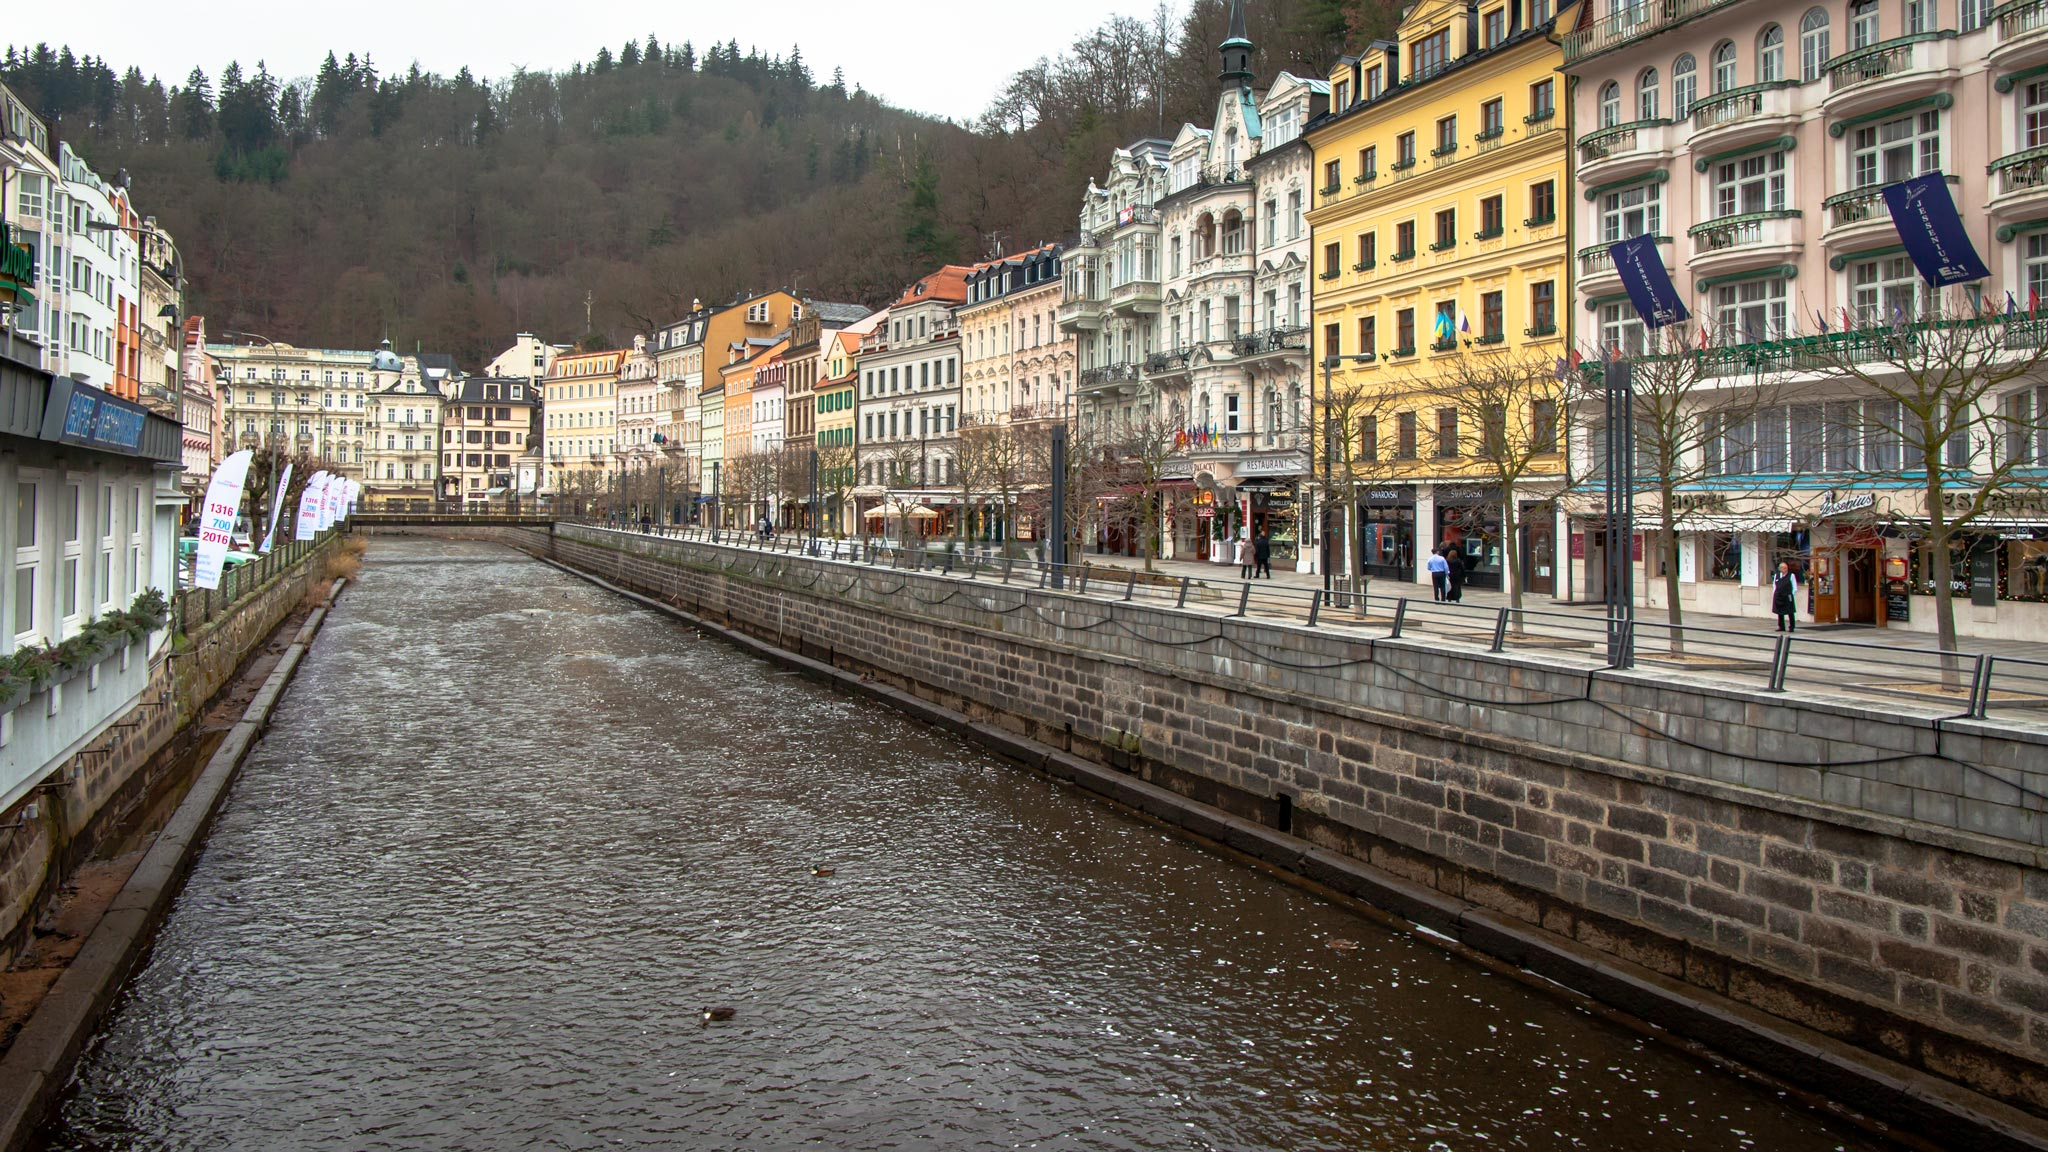 The Tepla river running through Karlovy Vary